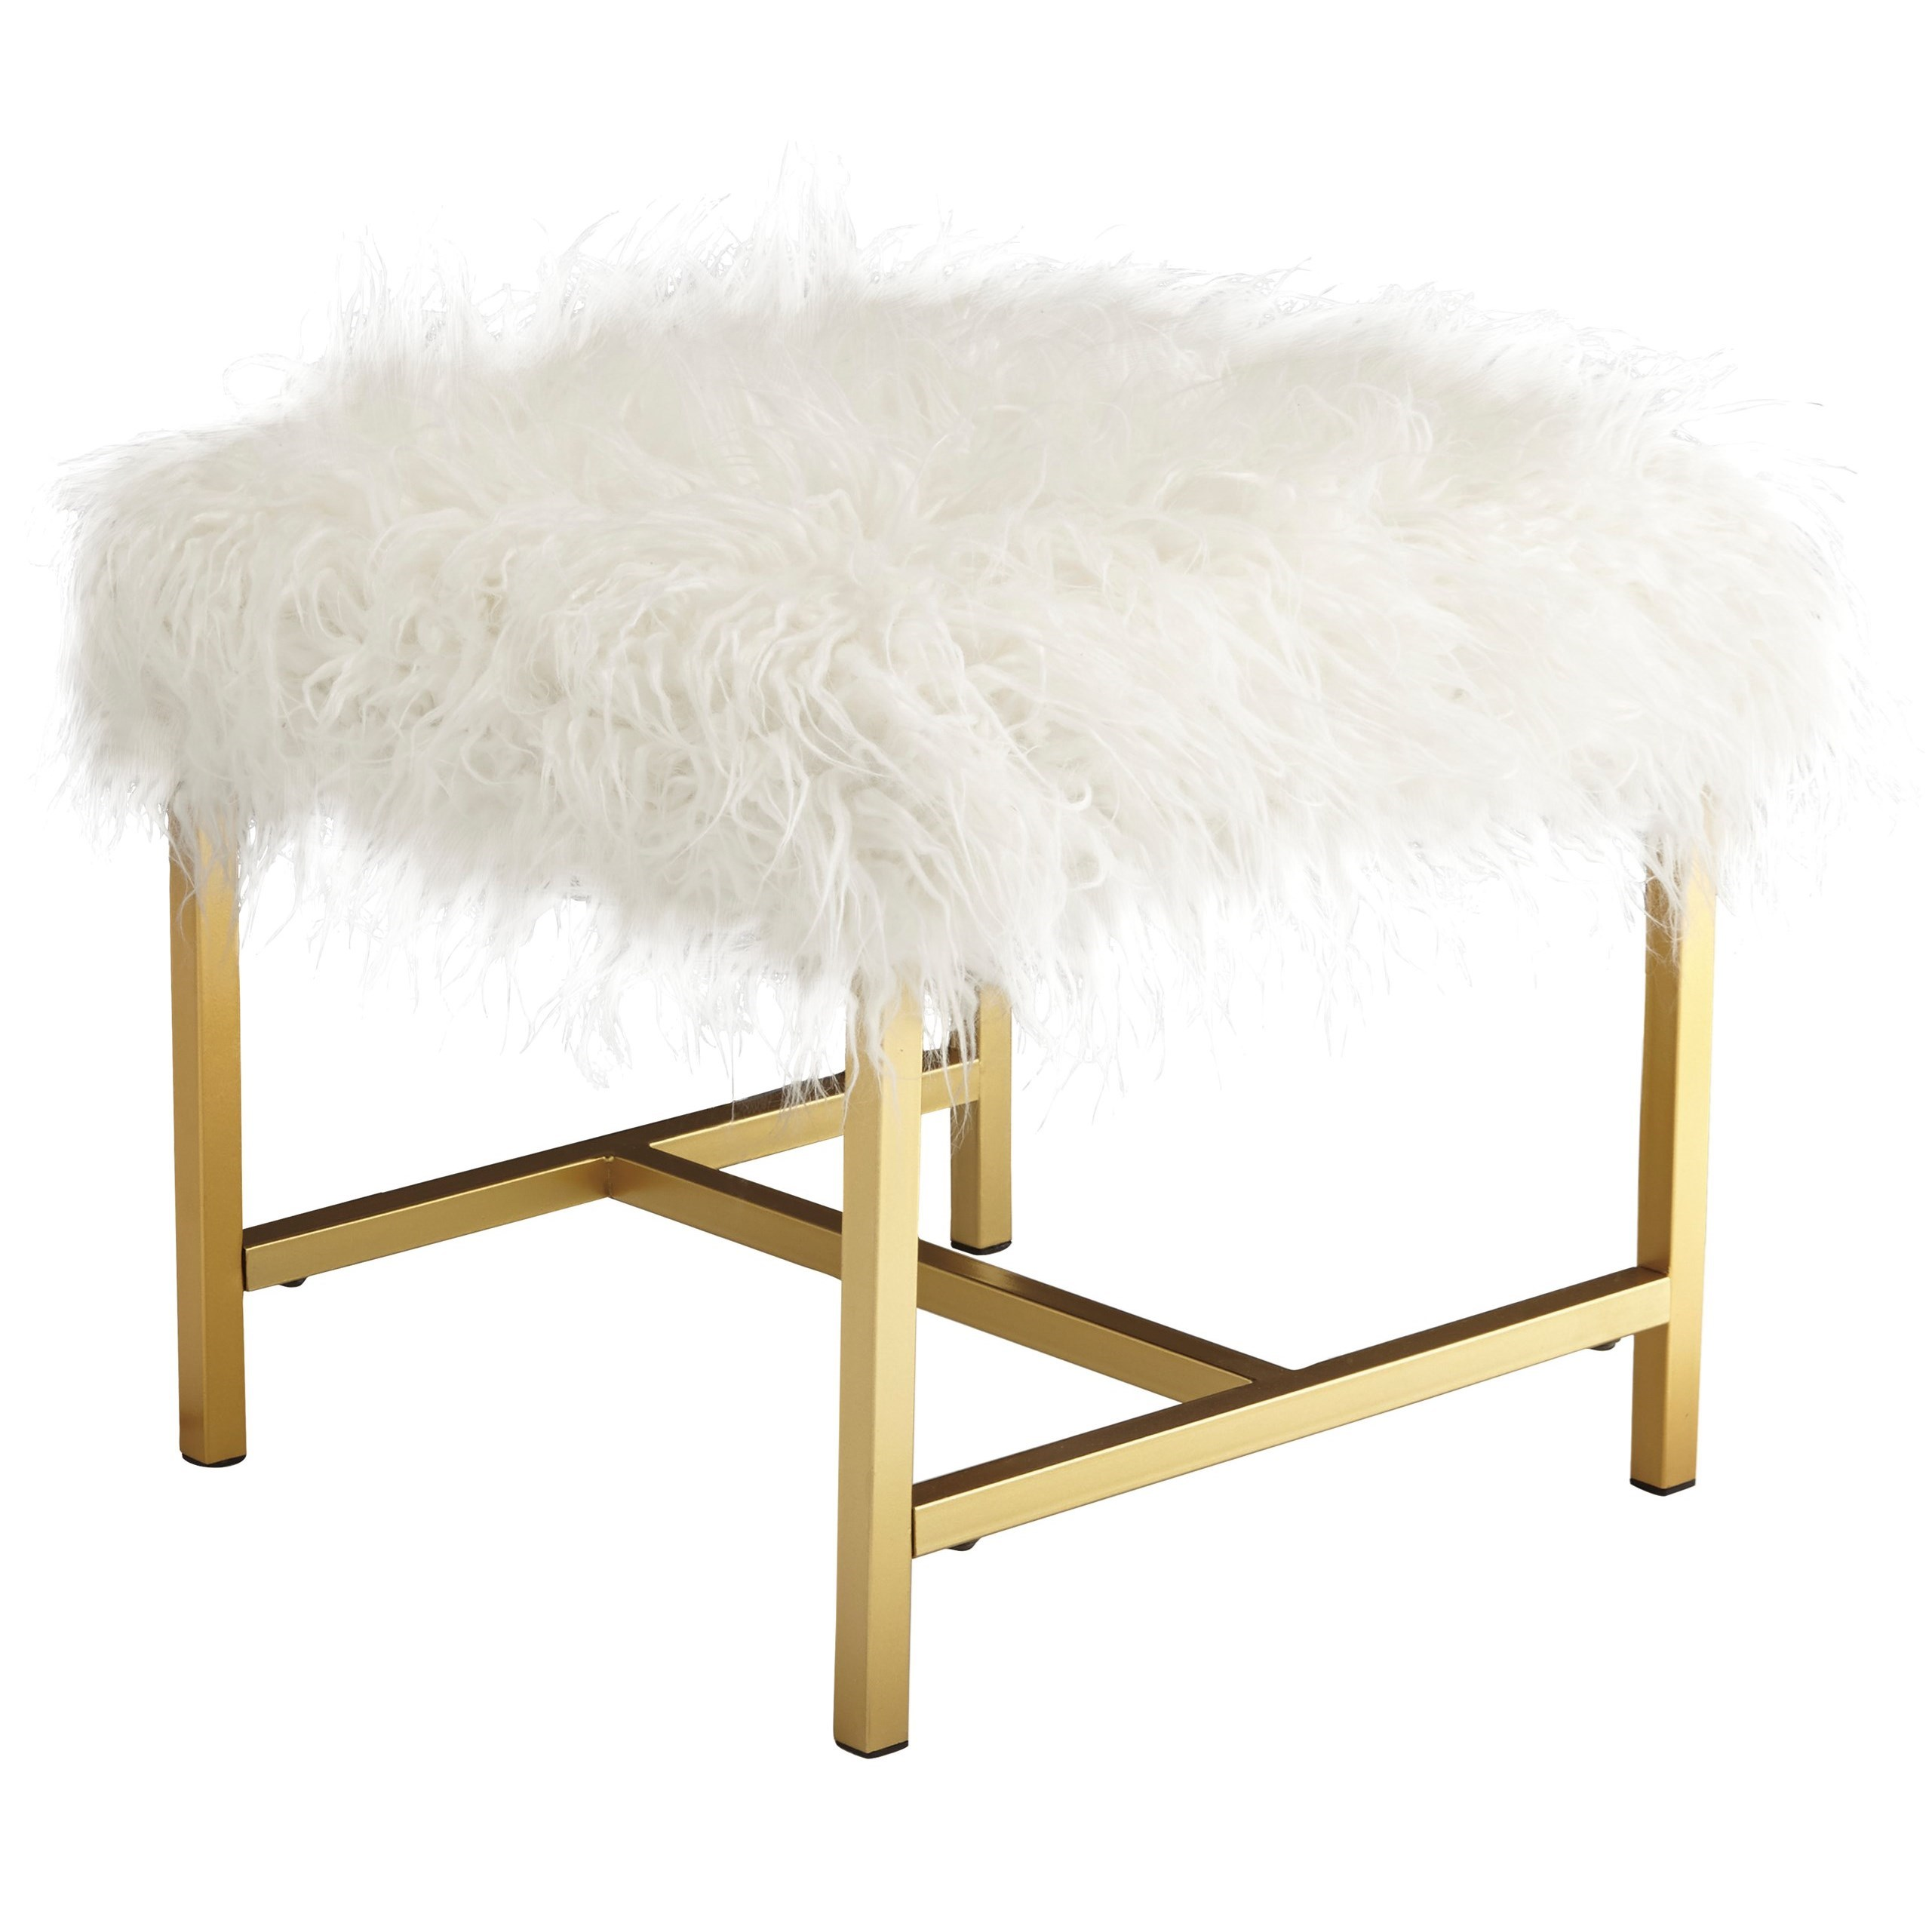 Stool with White Faux Fur and Gold Finish Legs